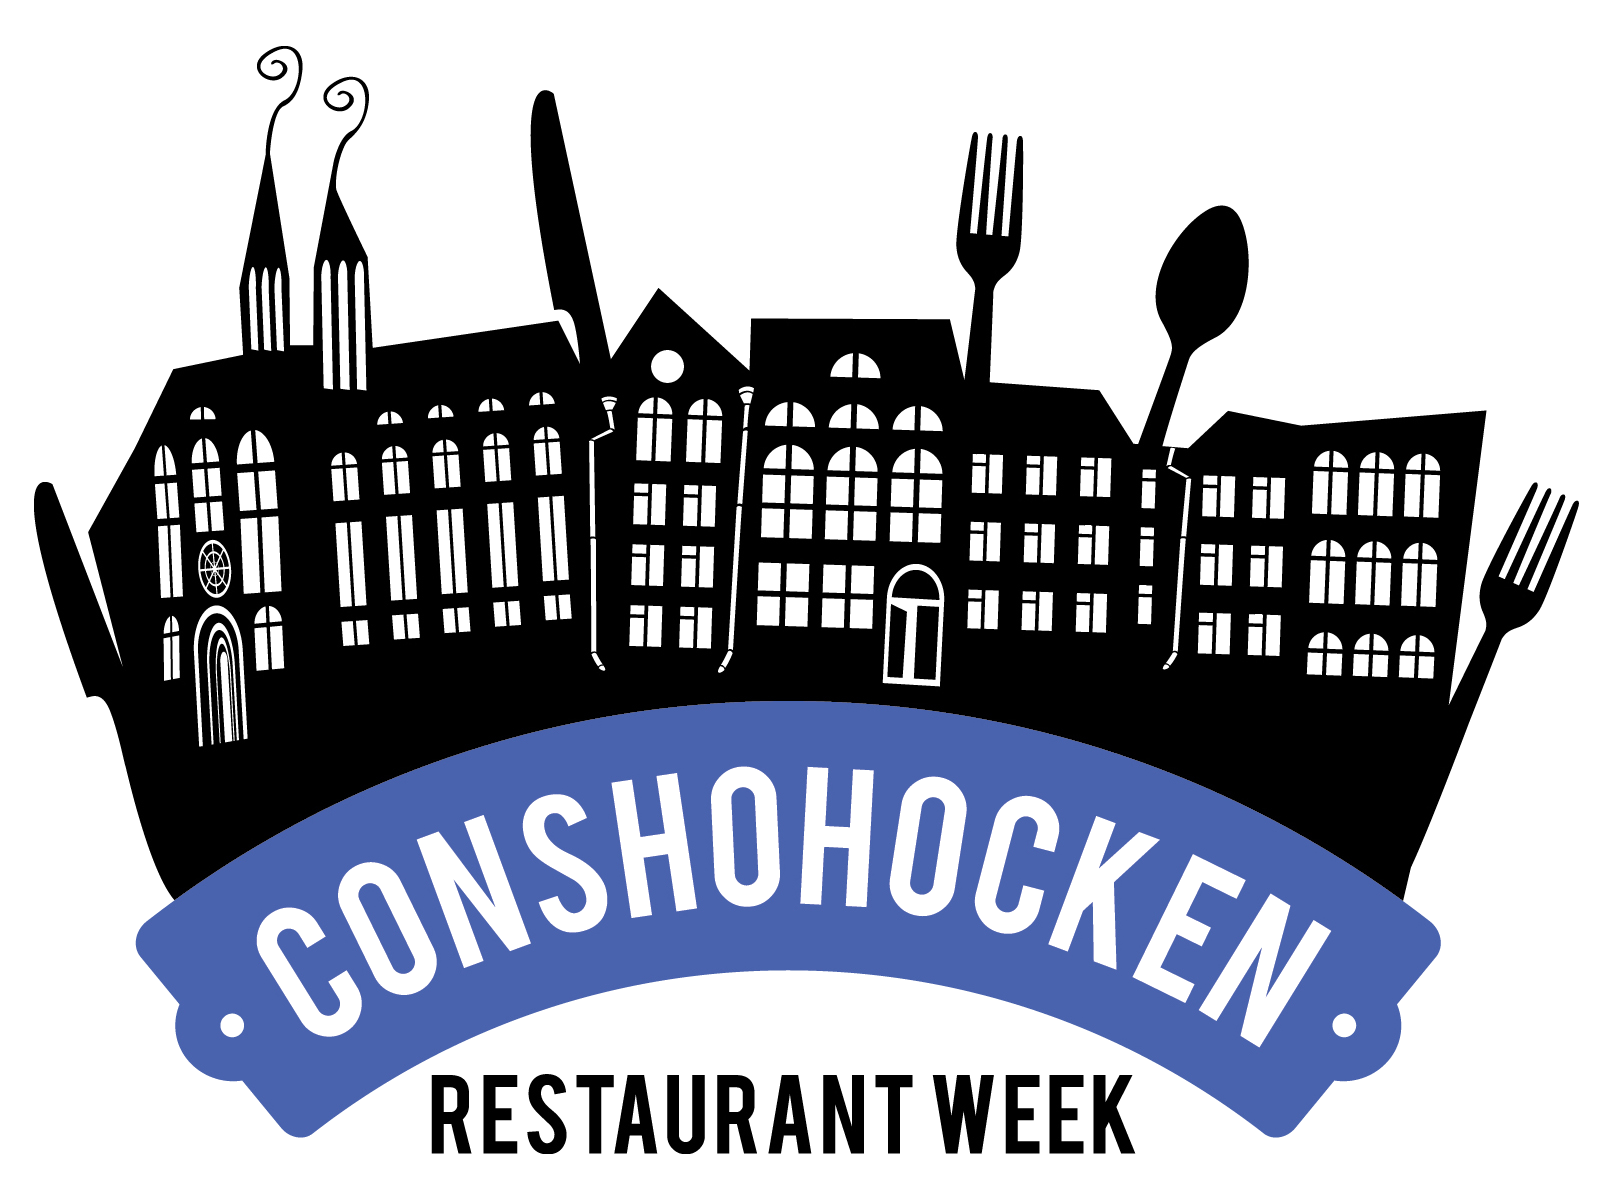 Conshohocken Restaurant Week 2019